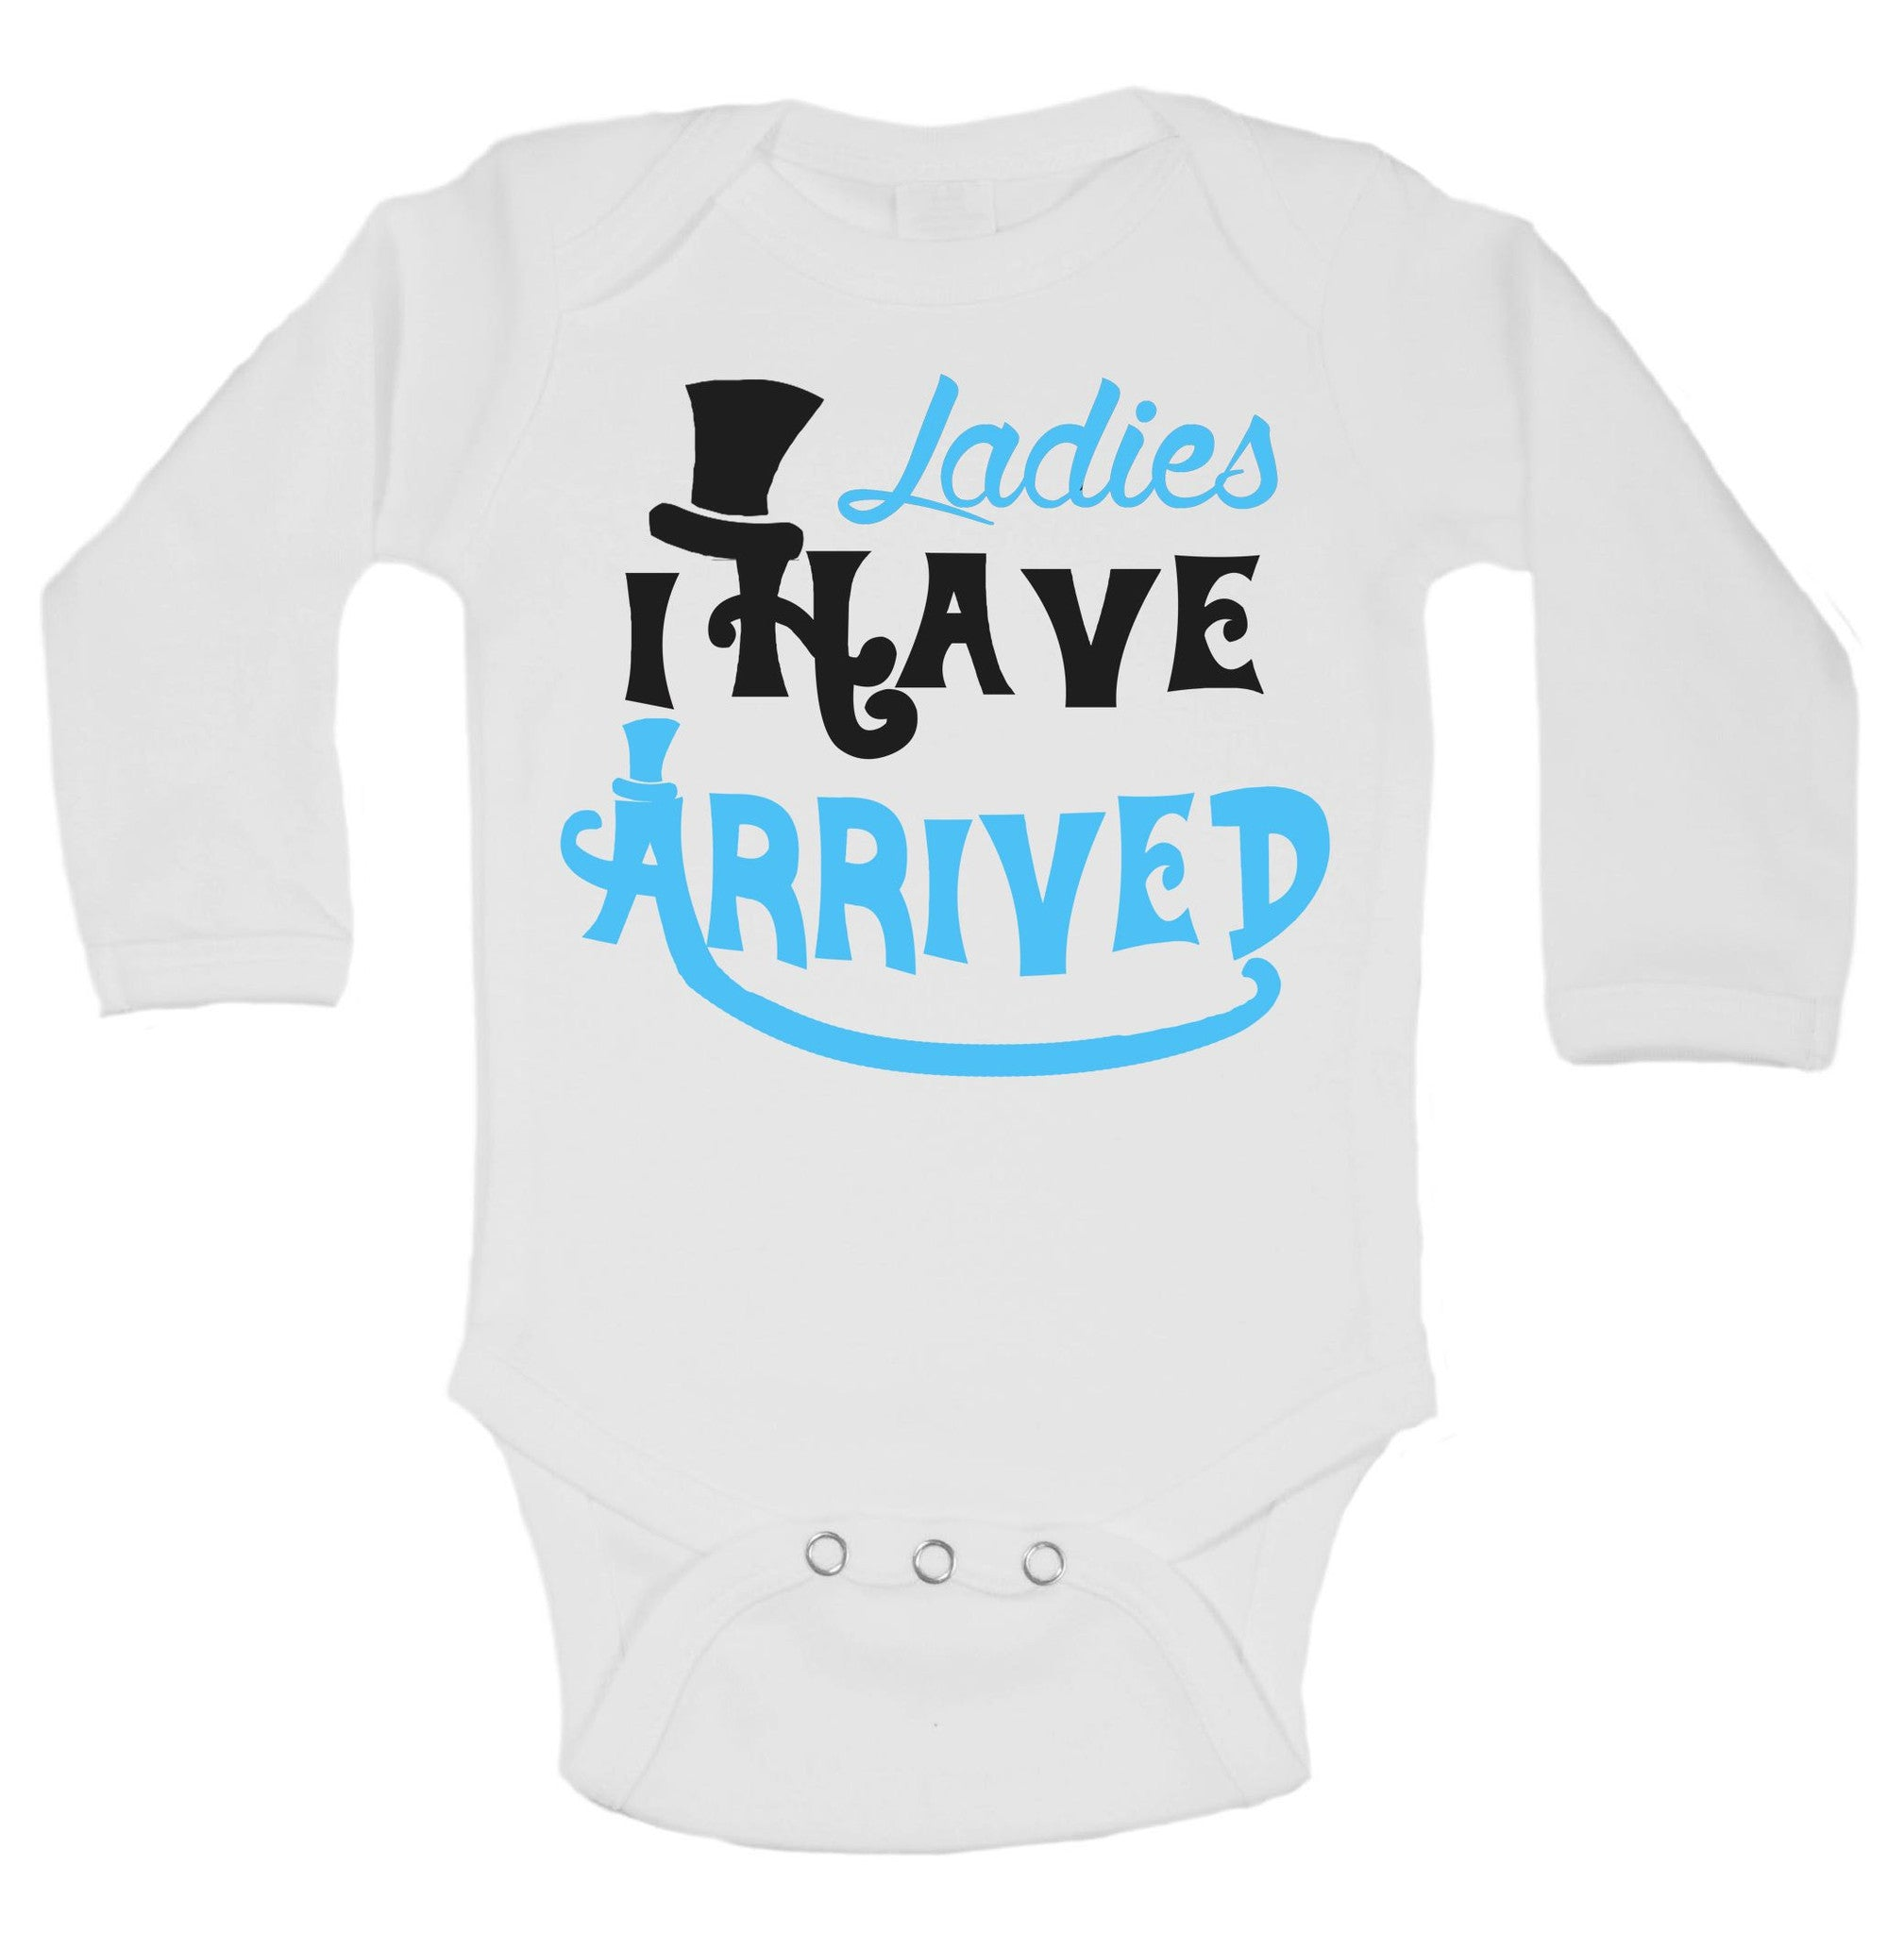 Ladies I Have Arrived Funny Kids Onesie - B110 - Funny Shirts Tank Tops Burnouts and Triblends  - 1